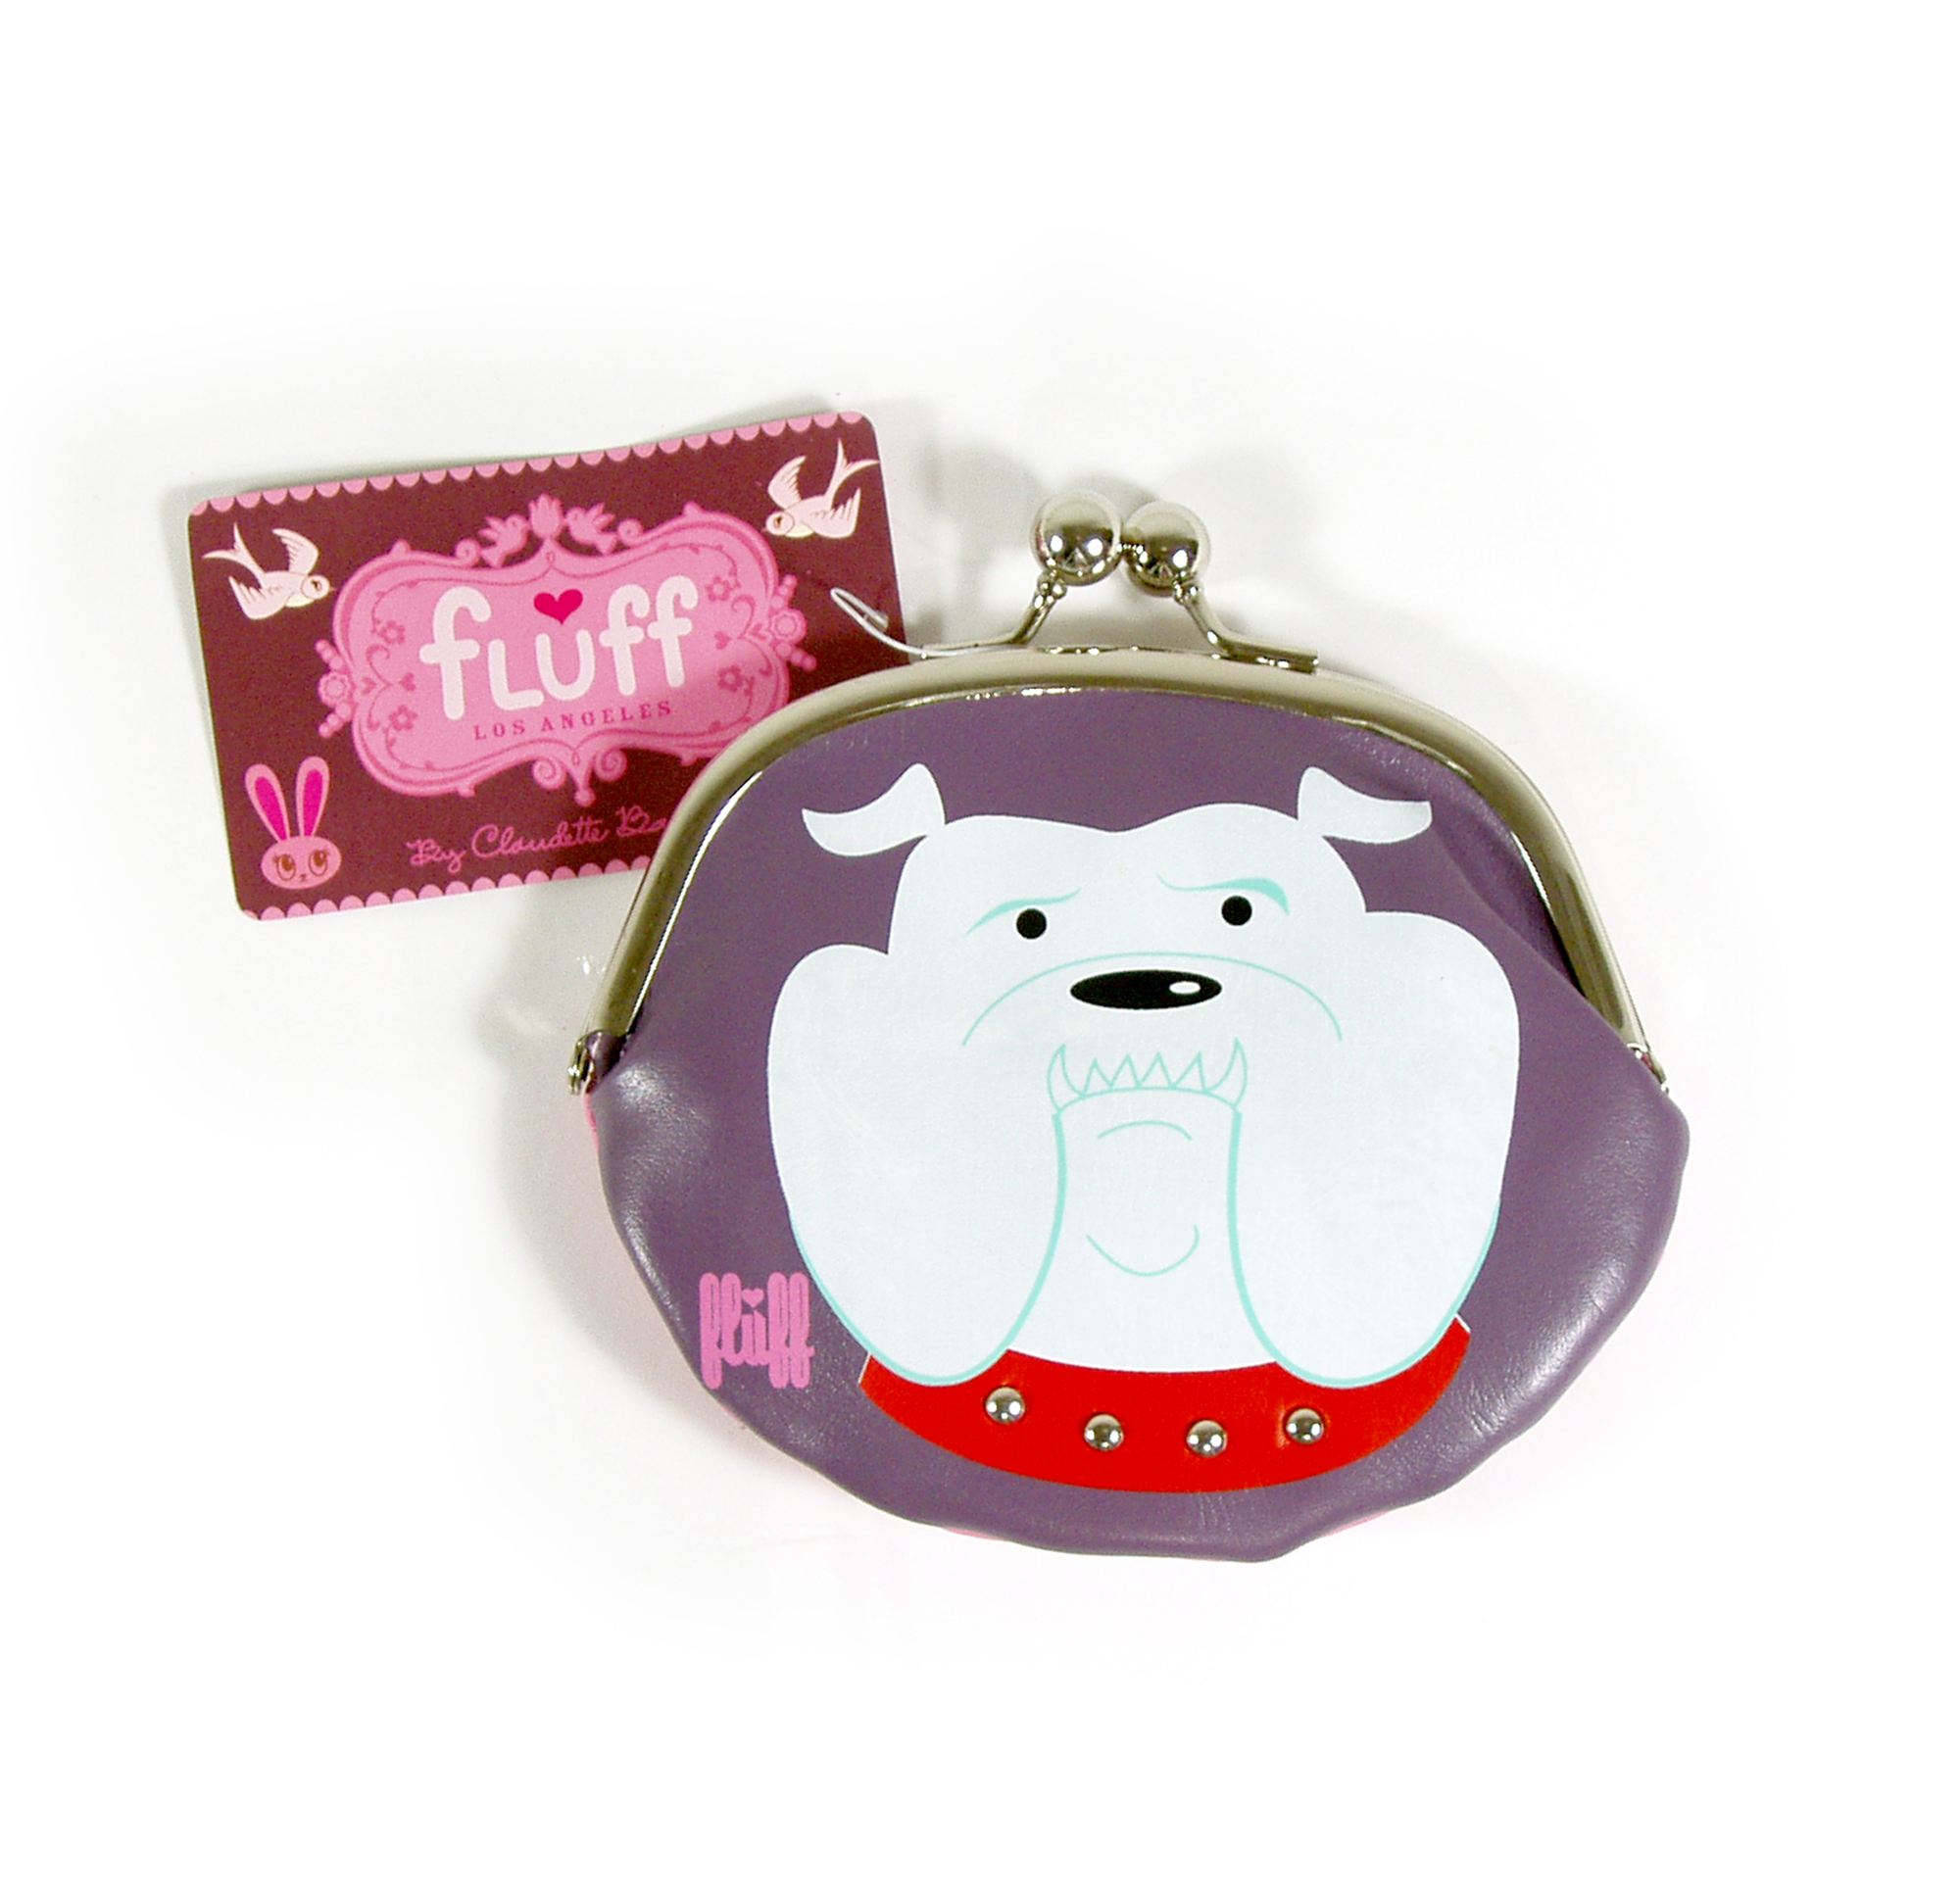 70e3cd3c927 Woof Bulldog Large Coin Purse By Fluff Pink Cat